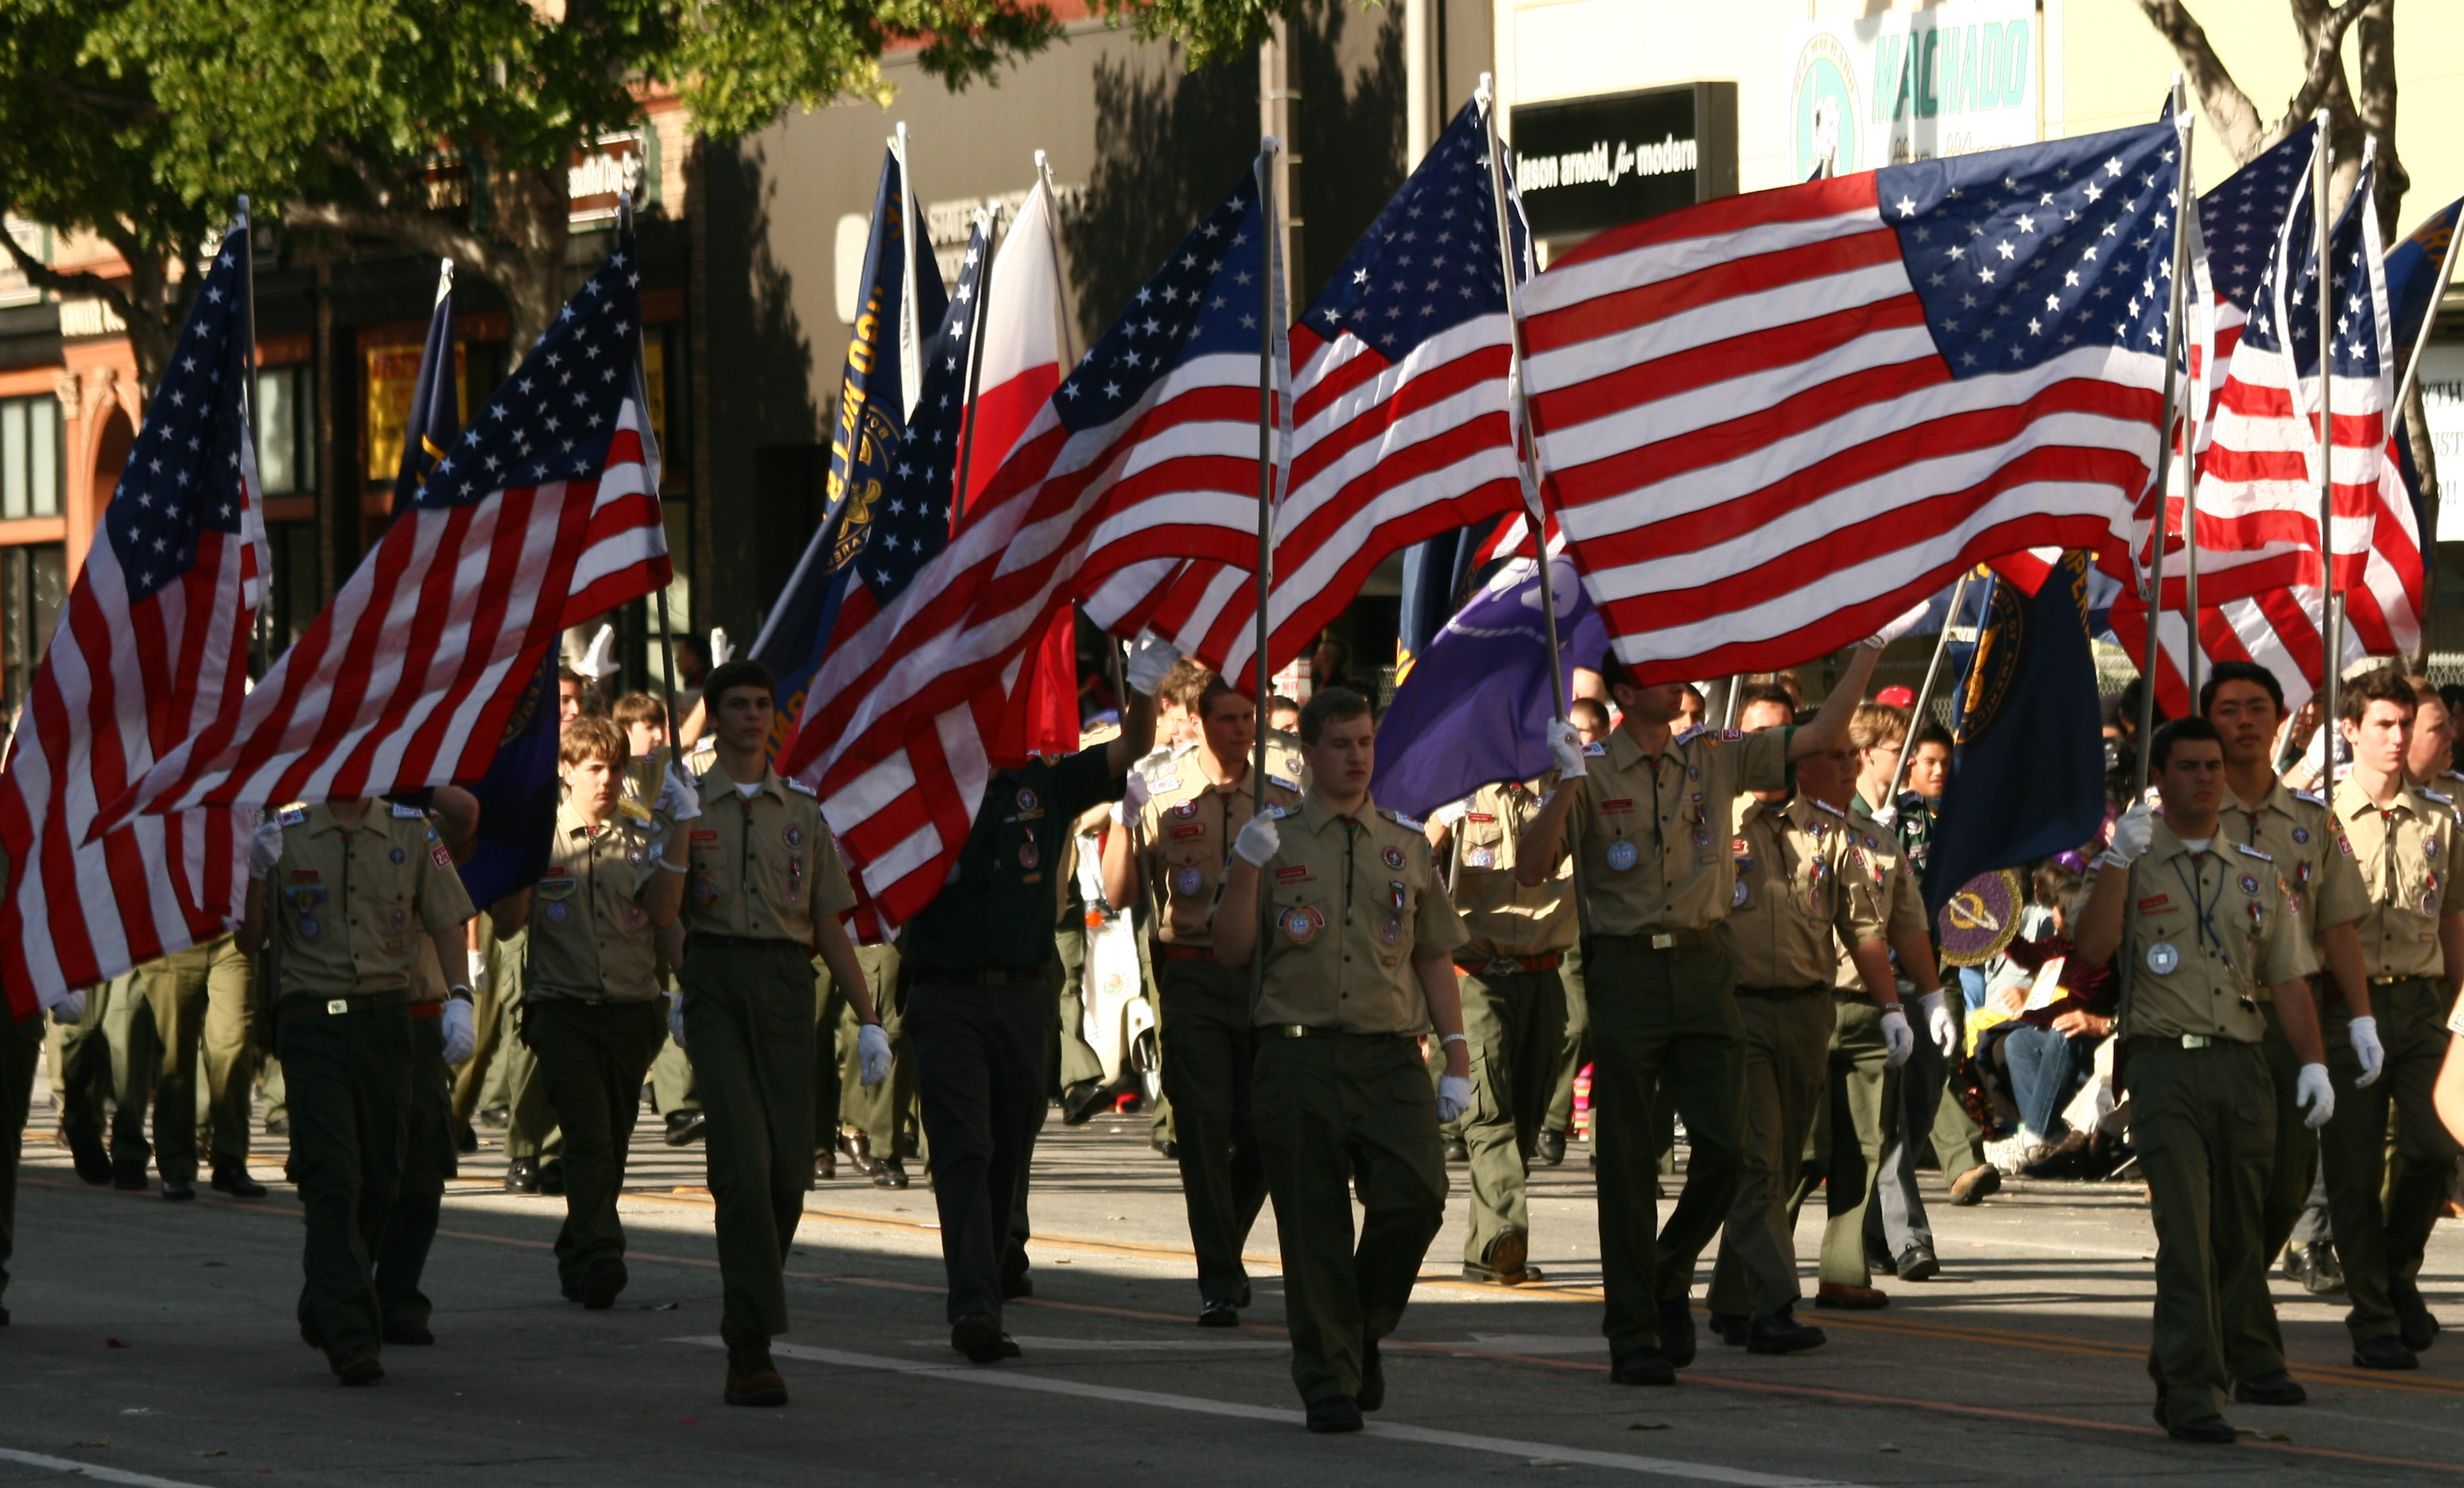 An End to Boy Scouts Ban on Gay Adults?